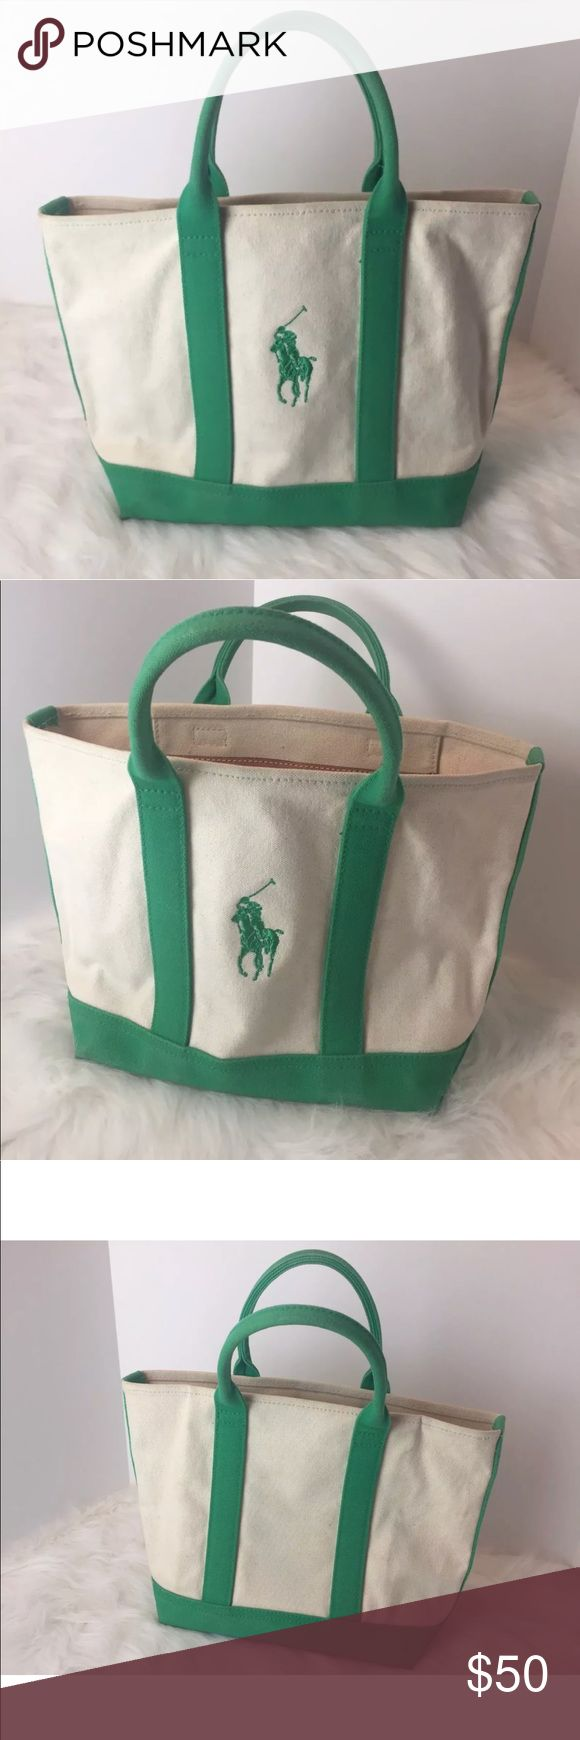 Polo Ralph Lauren Canvas Tote Beach Bag Green This is a vintage Ralph Lauren beach tote bag. It's in great shape displayed in pictures. Very nice for the beach, tote, carry bag. Is tan and green big logo with patched Ralph Lauren pocket with zipper. All included in pictures. Enjoy! Message me with any questions Polo by Ralph Lauren Bags Totes